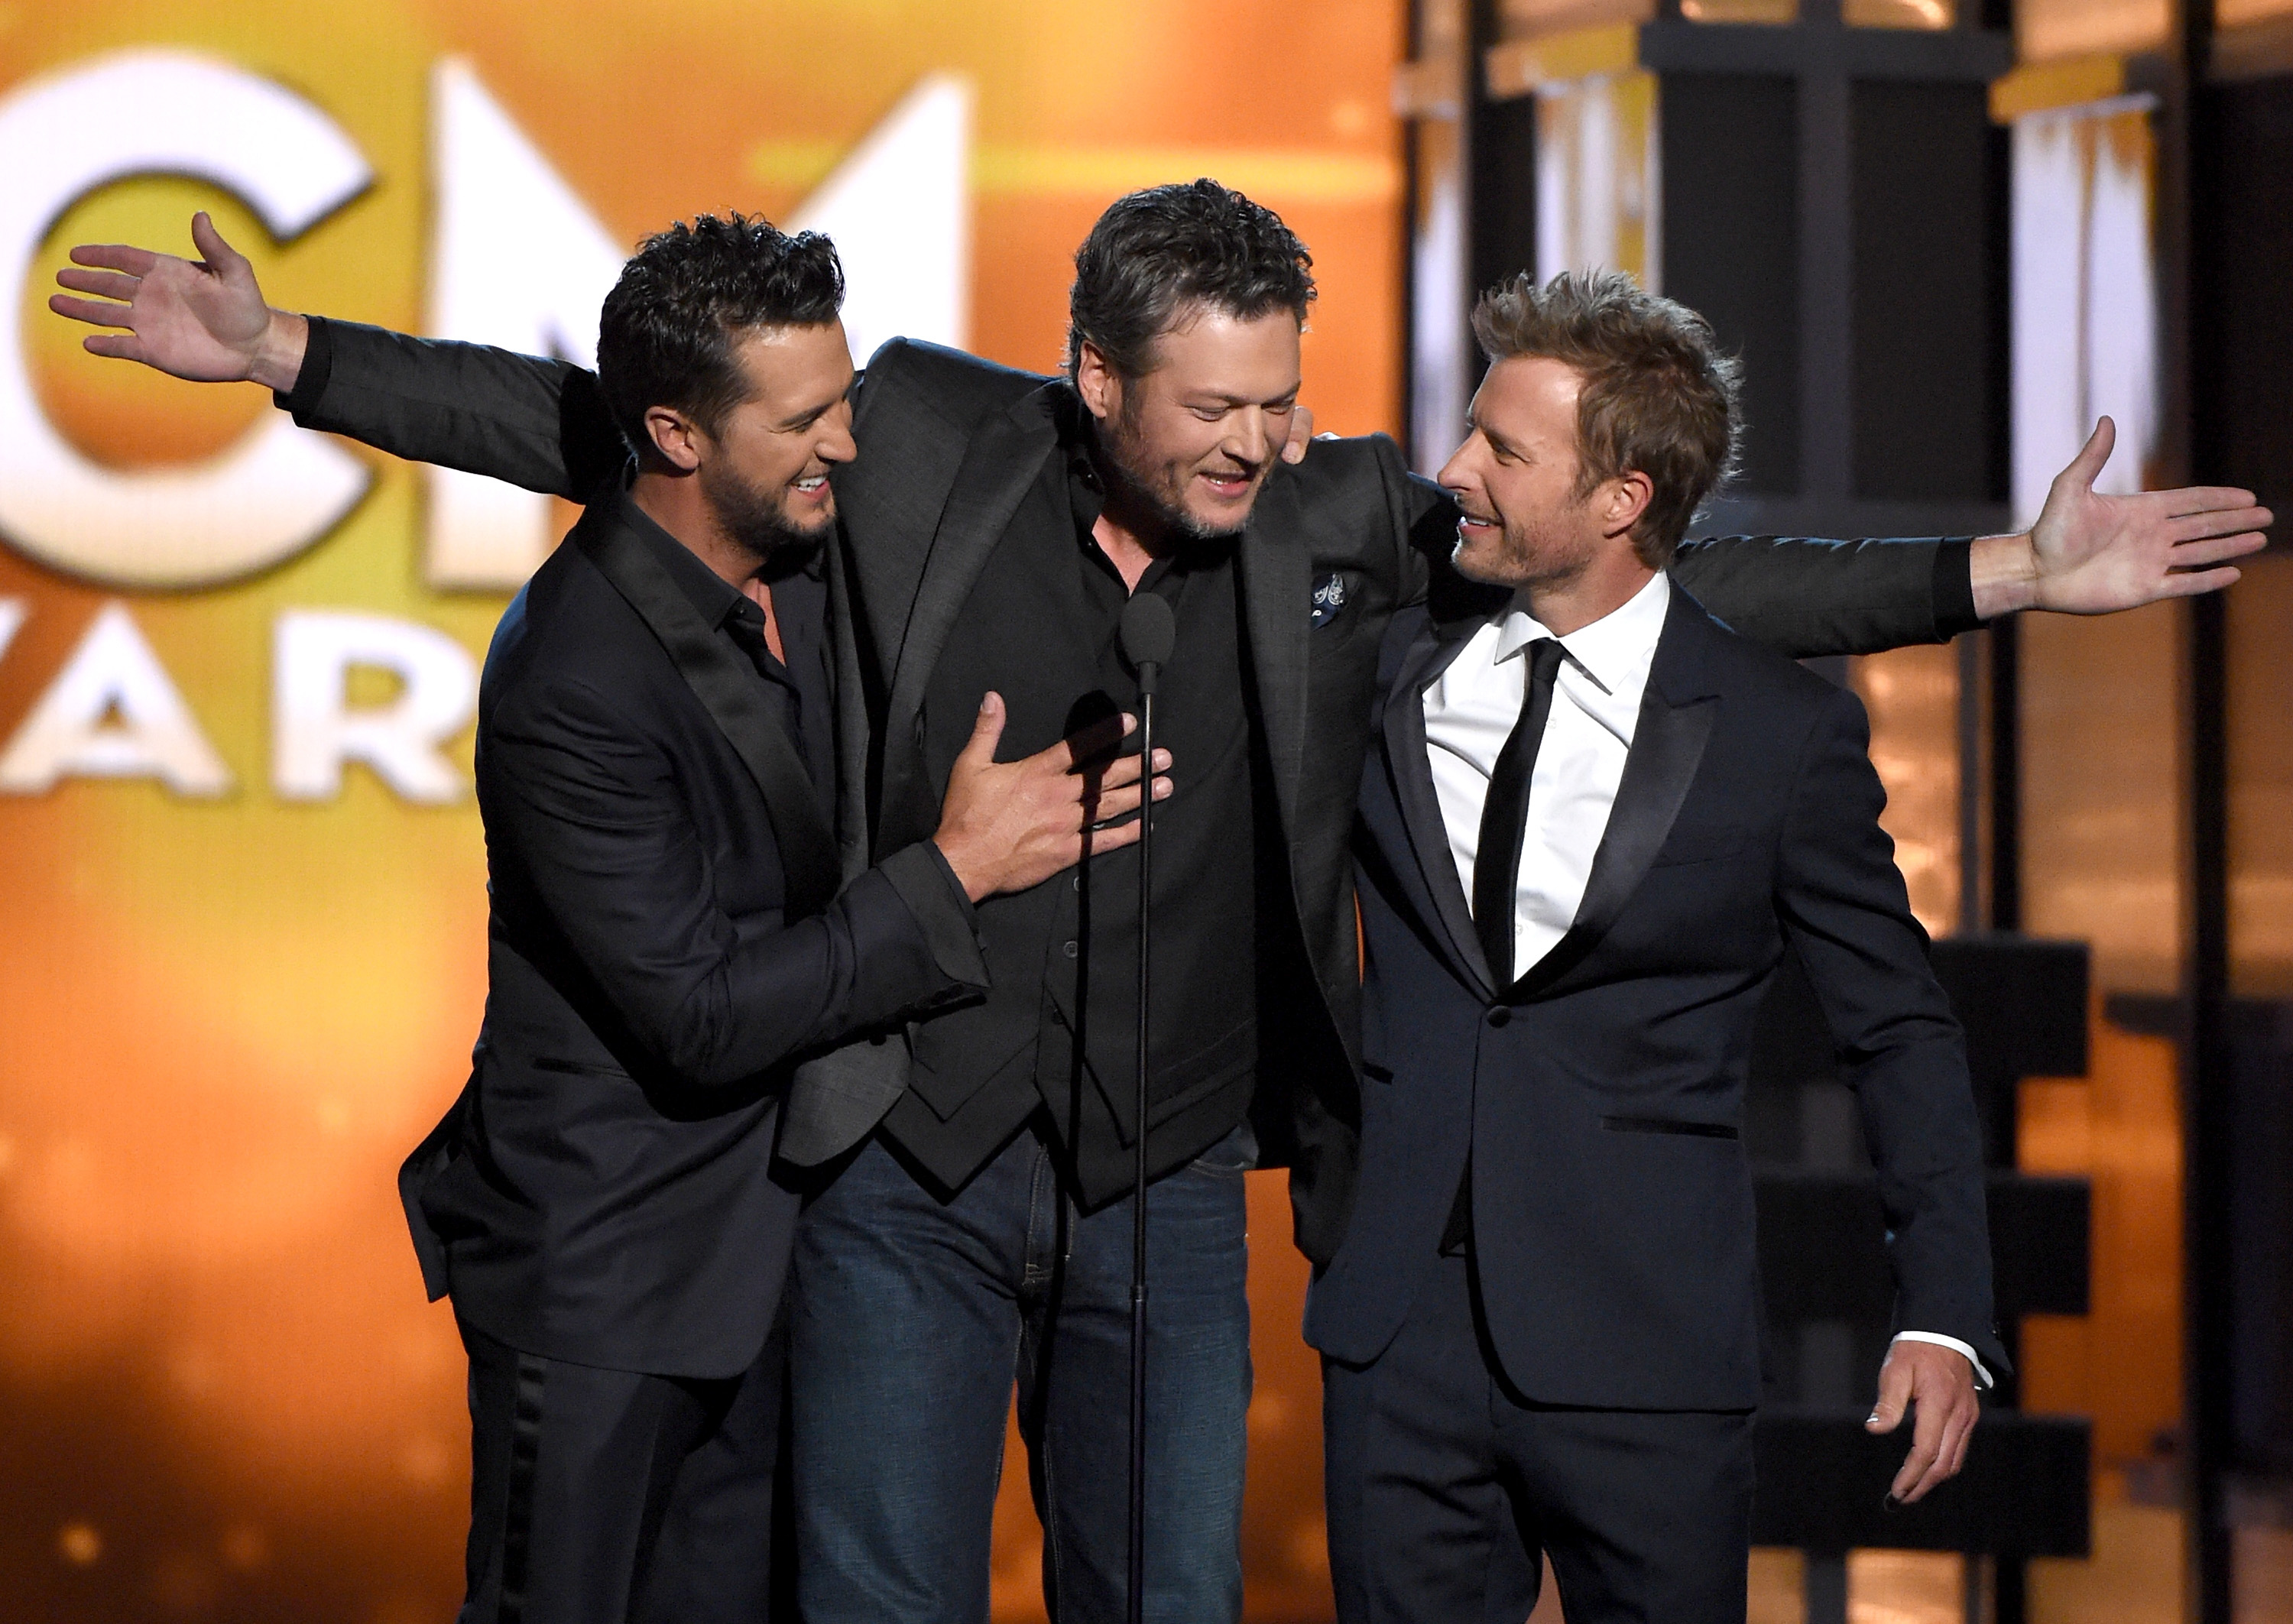 Luke Bryan Blake Shelton And Dierks Bentley 2016 Acm